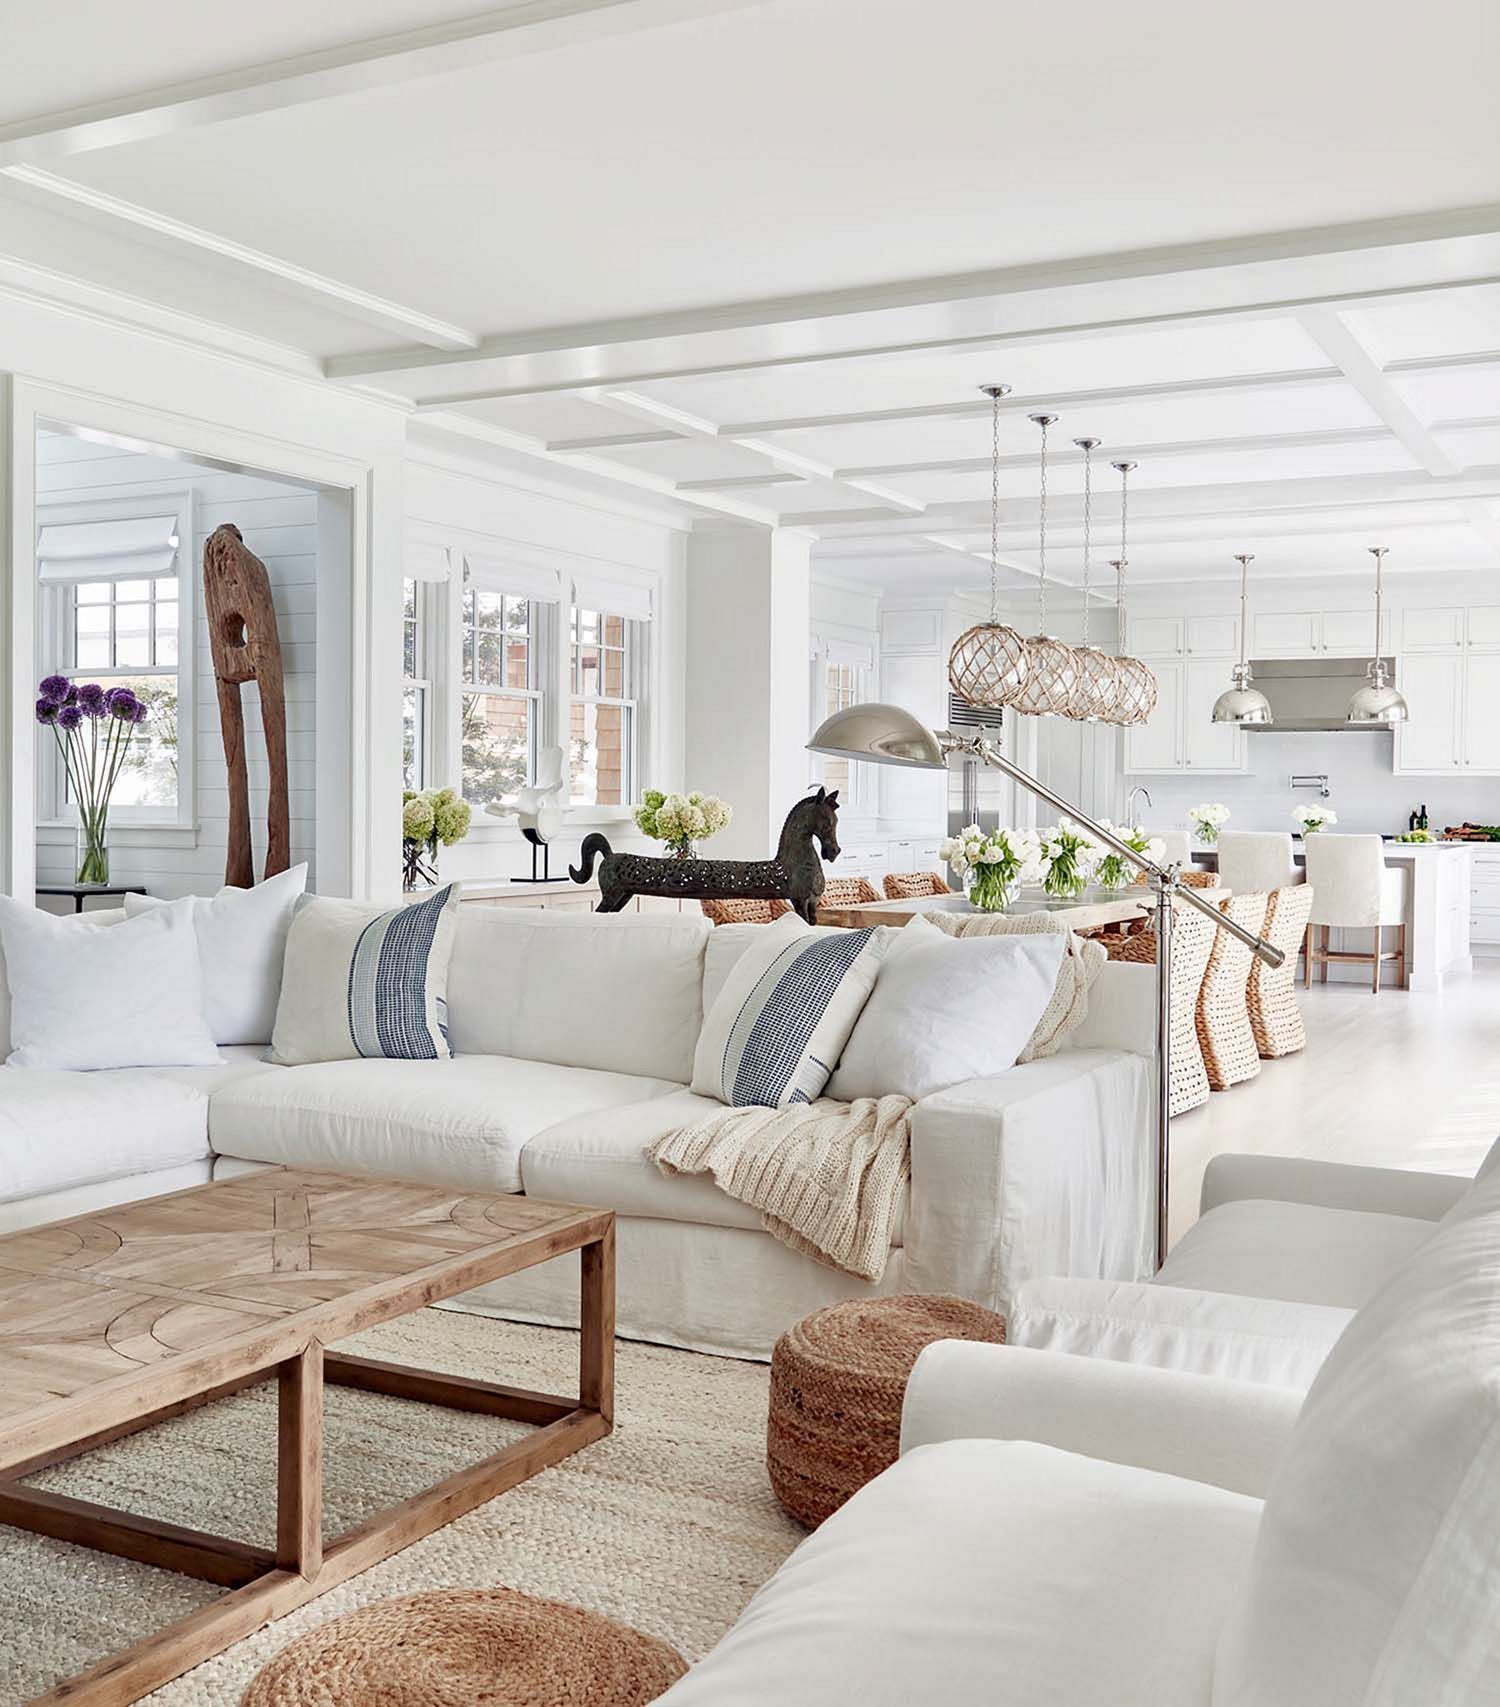 Elegant White Beach House Ideas 019 In 2020 With Images Farm House Living Room Beach House Interior Design Beach House Interior